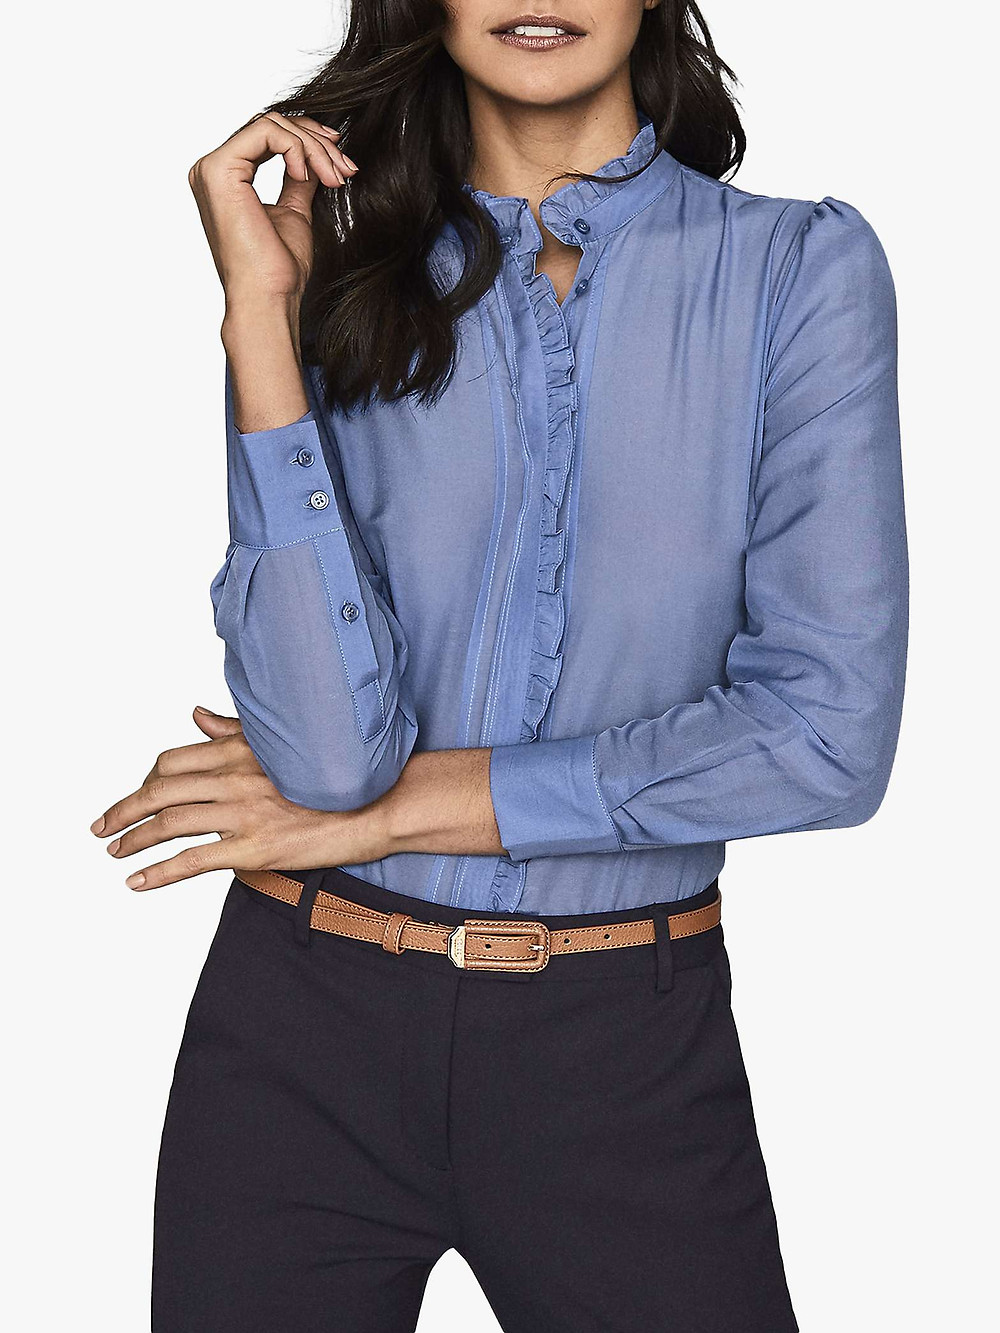 Reiss floral collarless blouse